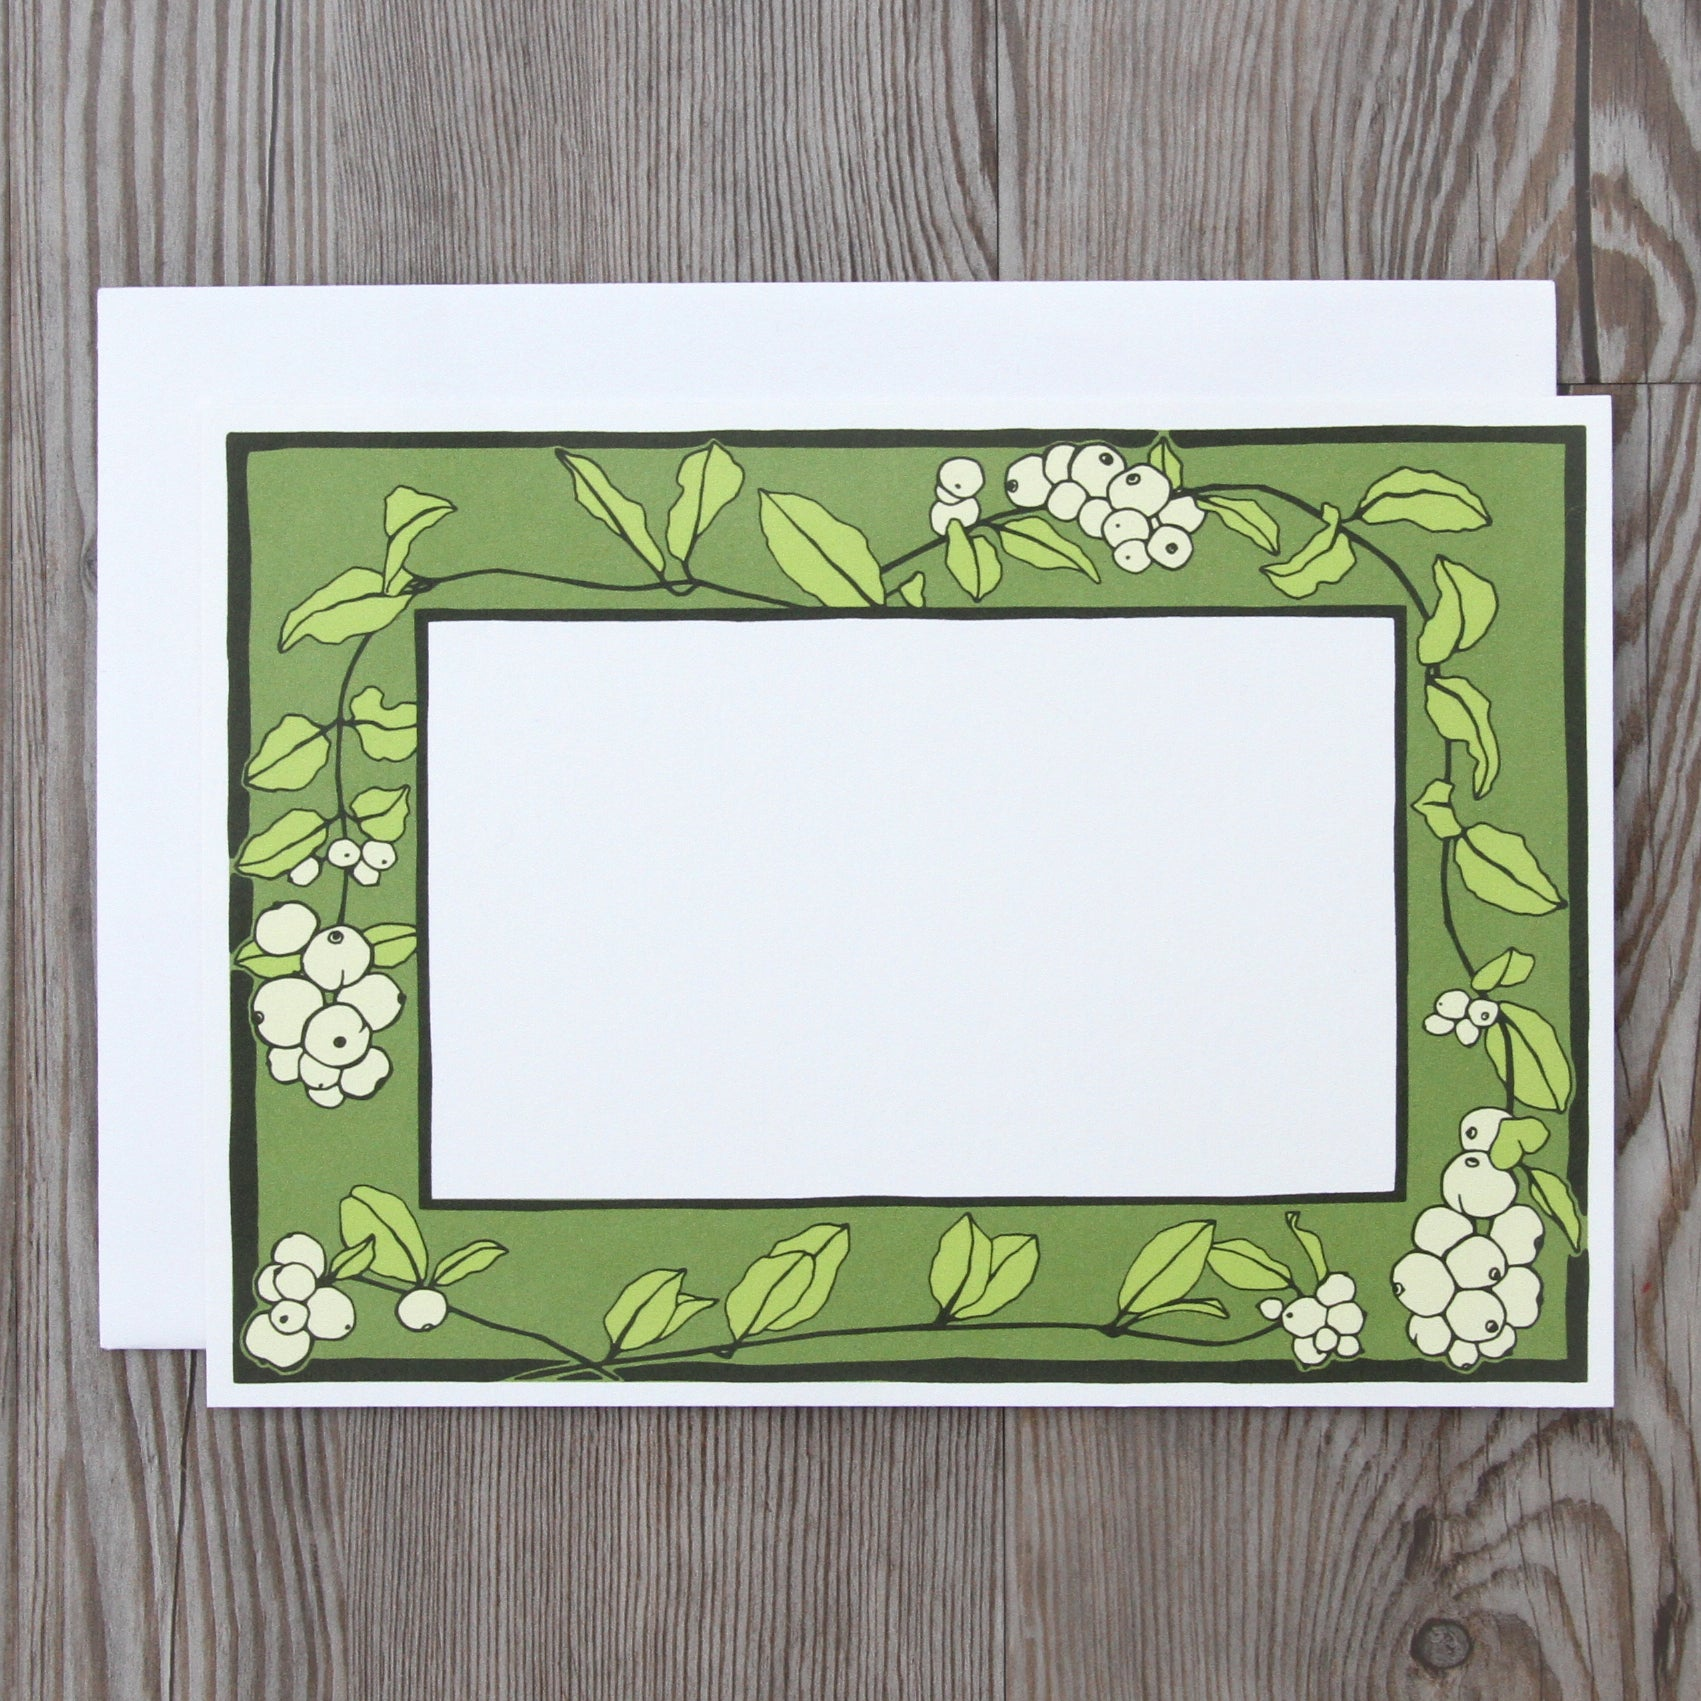 6 Snowberry Notecards